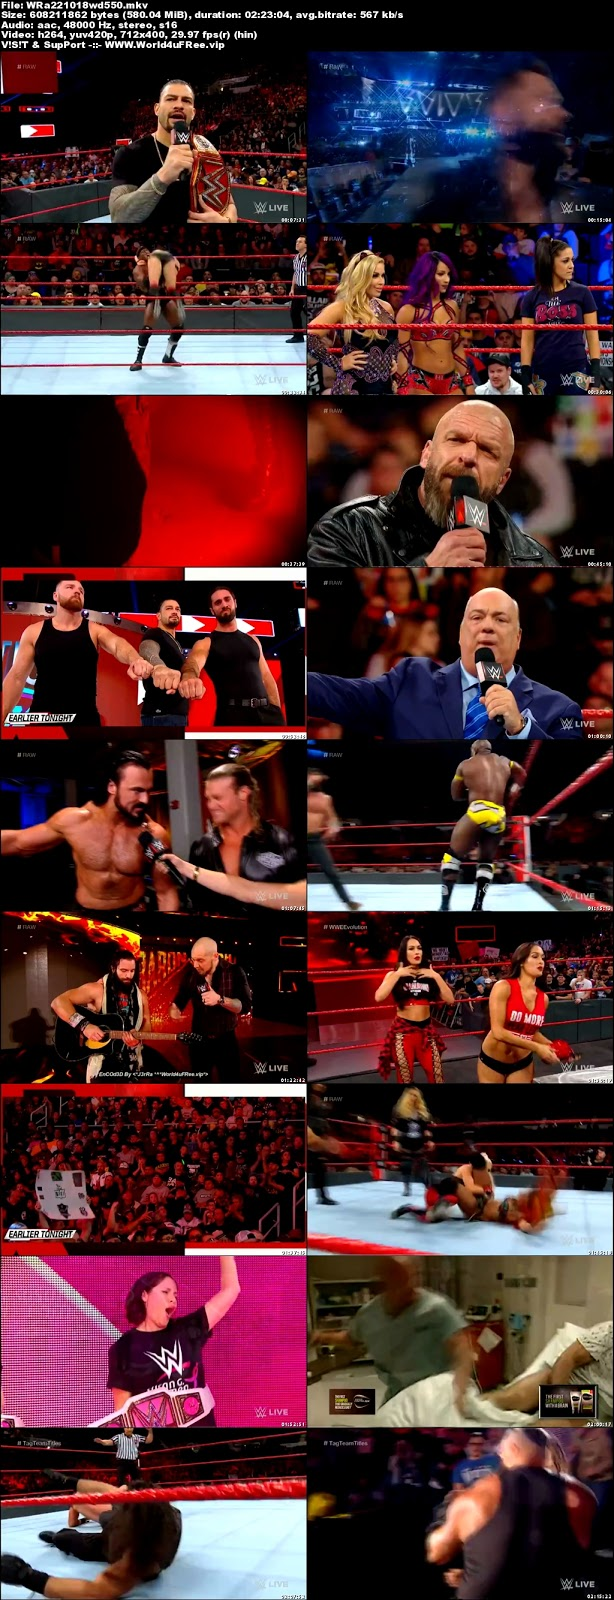 WWE Monday Night RAW 22 OCTOBER 2018 HDTV 480p 550MB x264 world4ufree.fun tv show wwe monday night raw wwe show monday night raw compressed small size free download or watch onlne at world4ufree.fun